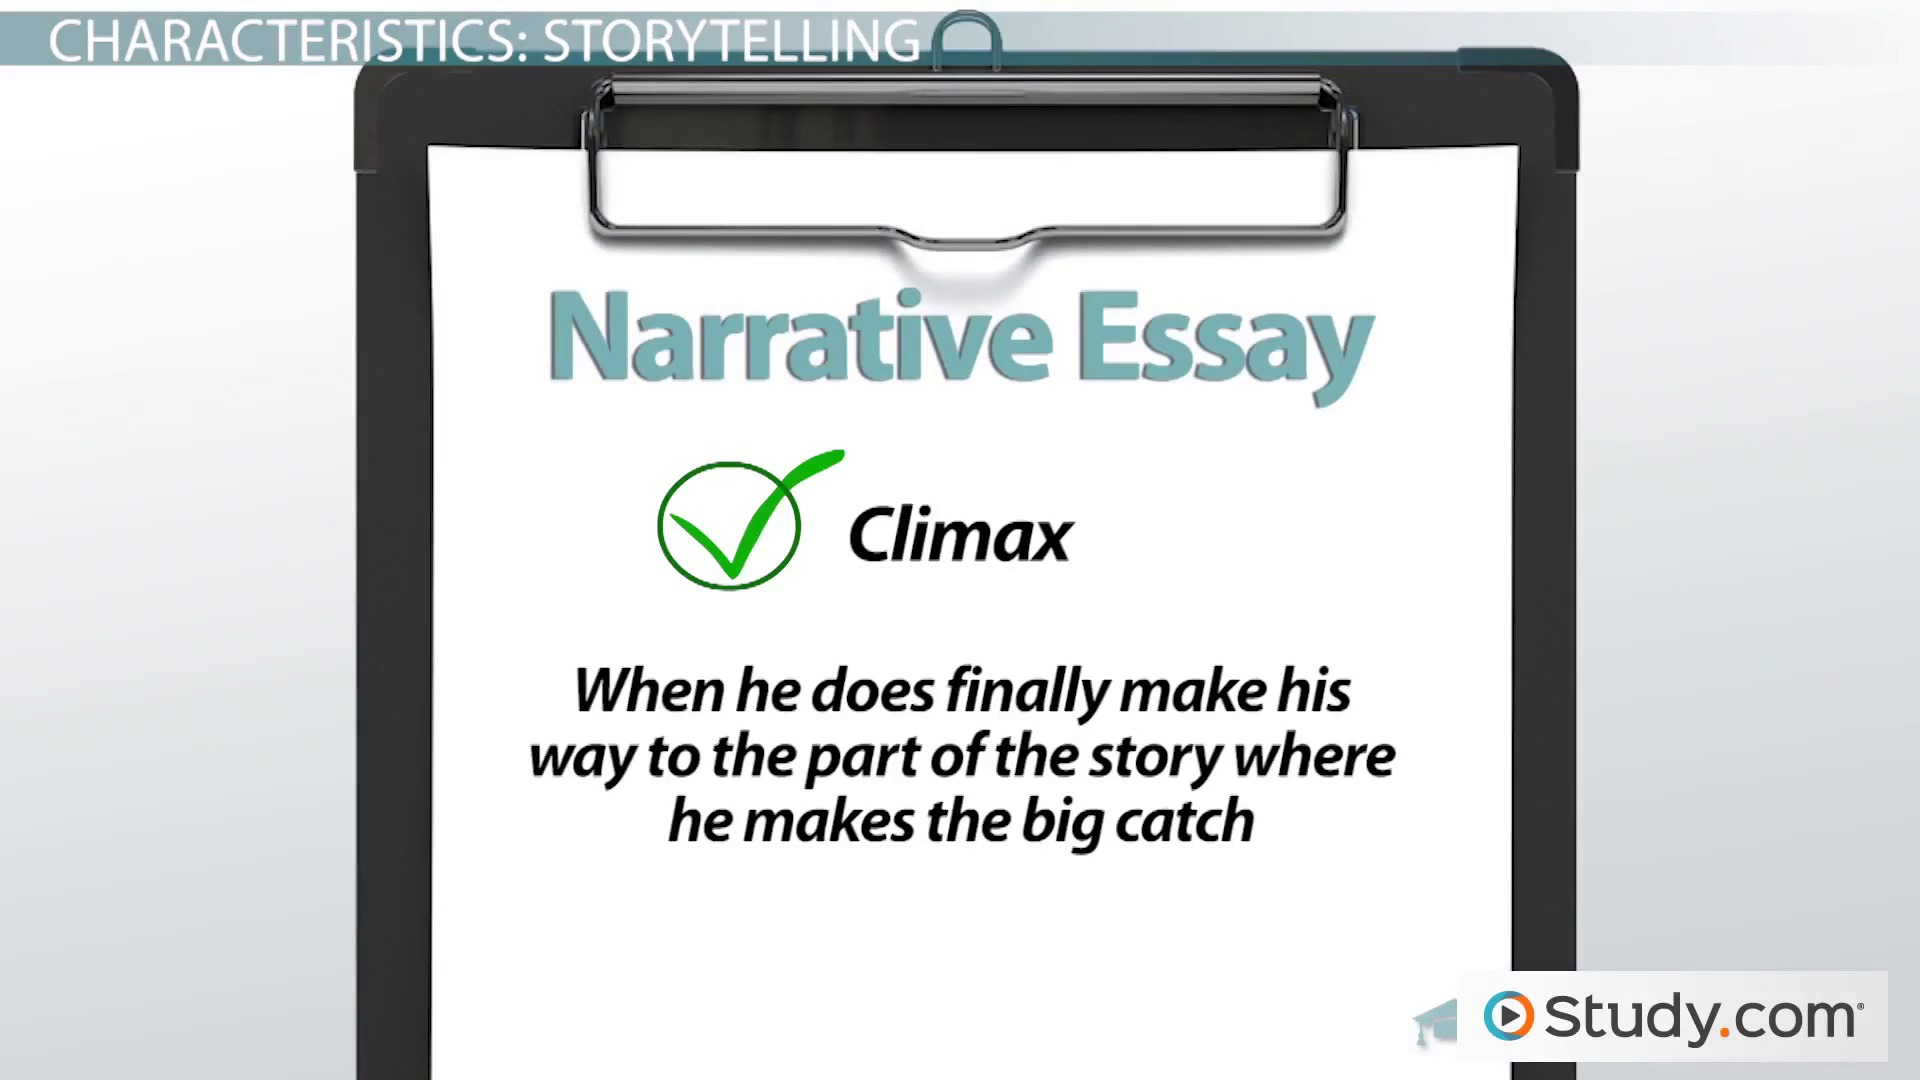 How can i improve my narritive essay ?